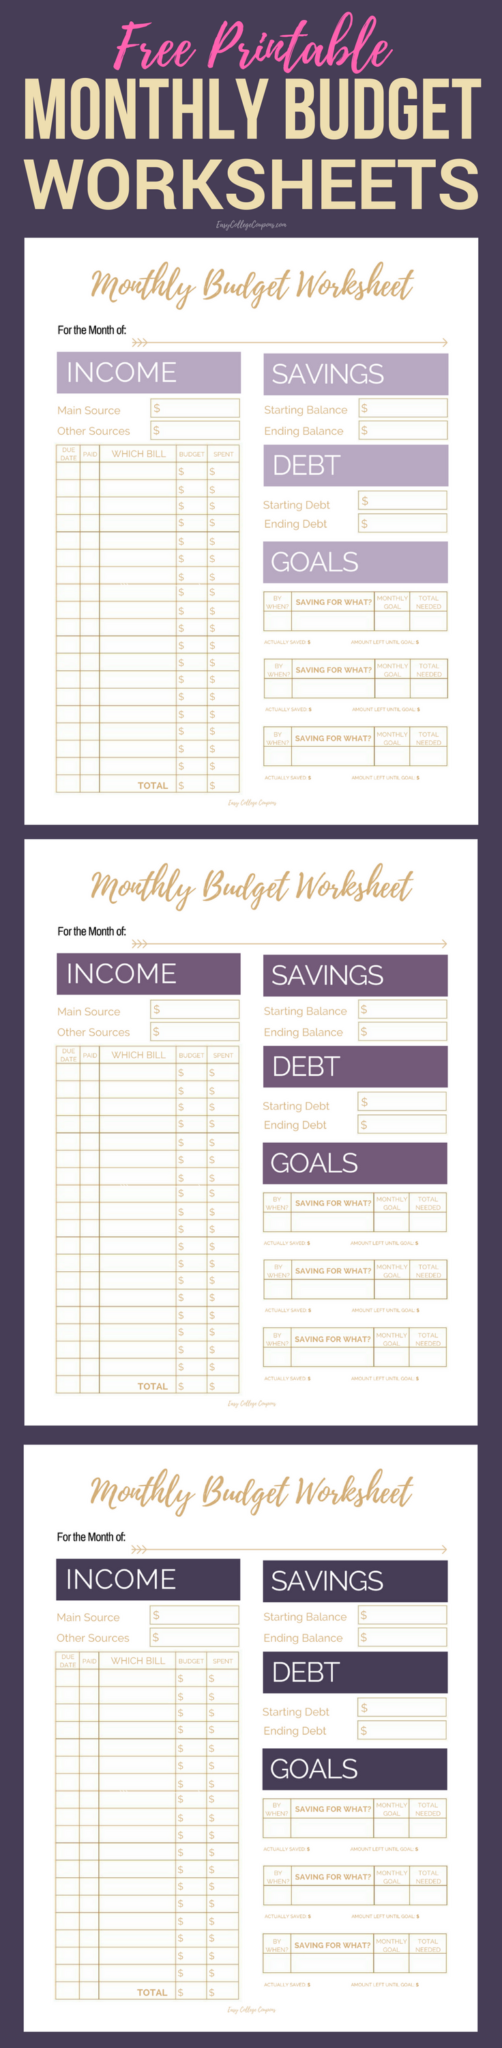 Free Printable Budget Worksheet, Sheets, Planner | Simple College Budgeting  | Finance, Saving Money #budeting #budgetlife #frugalliving #freeprintables  #